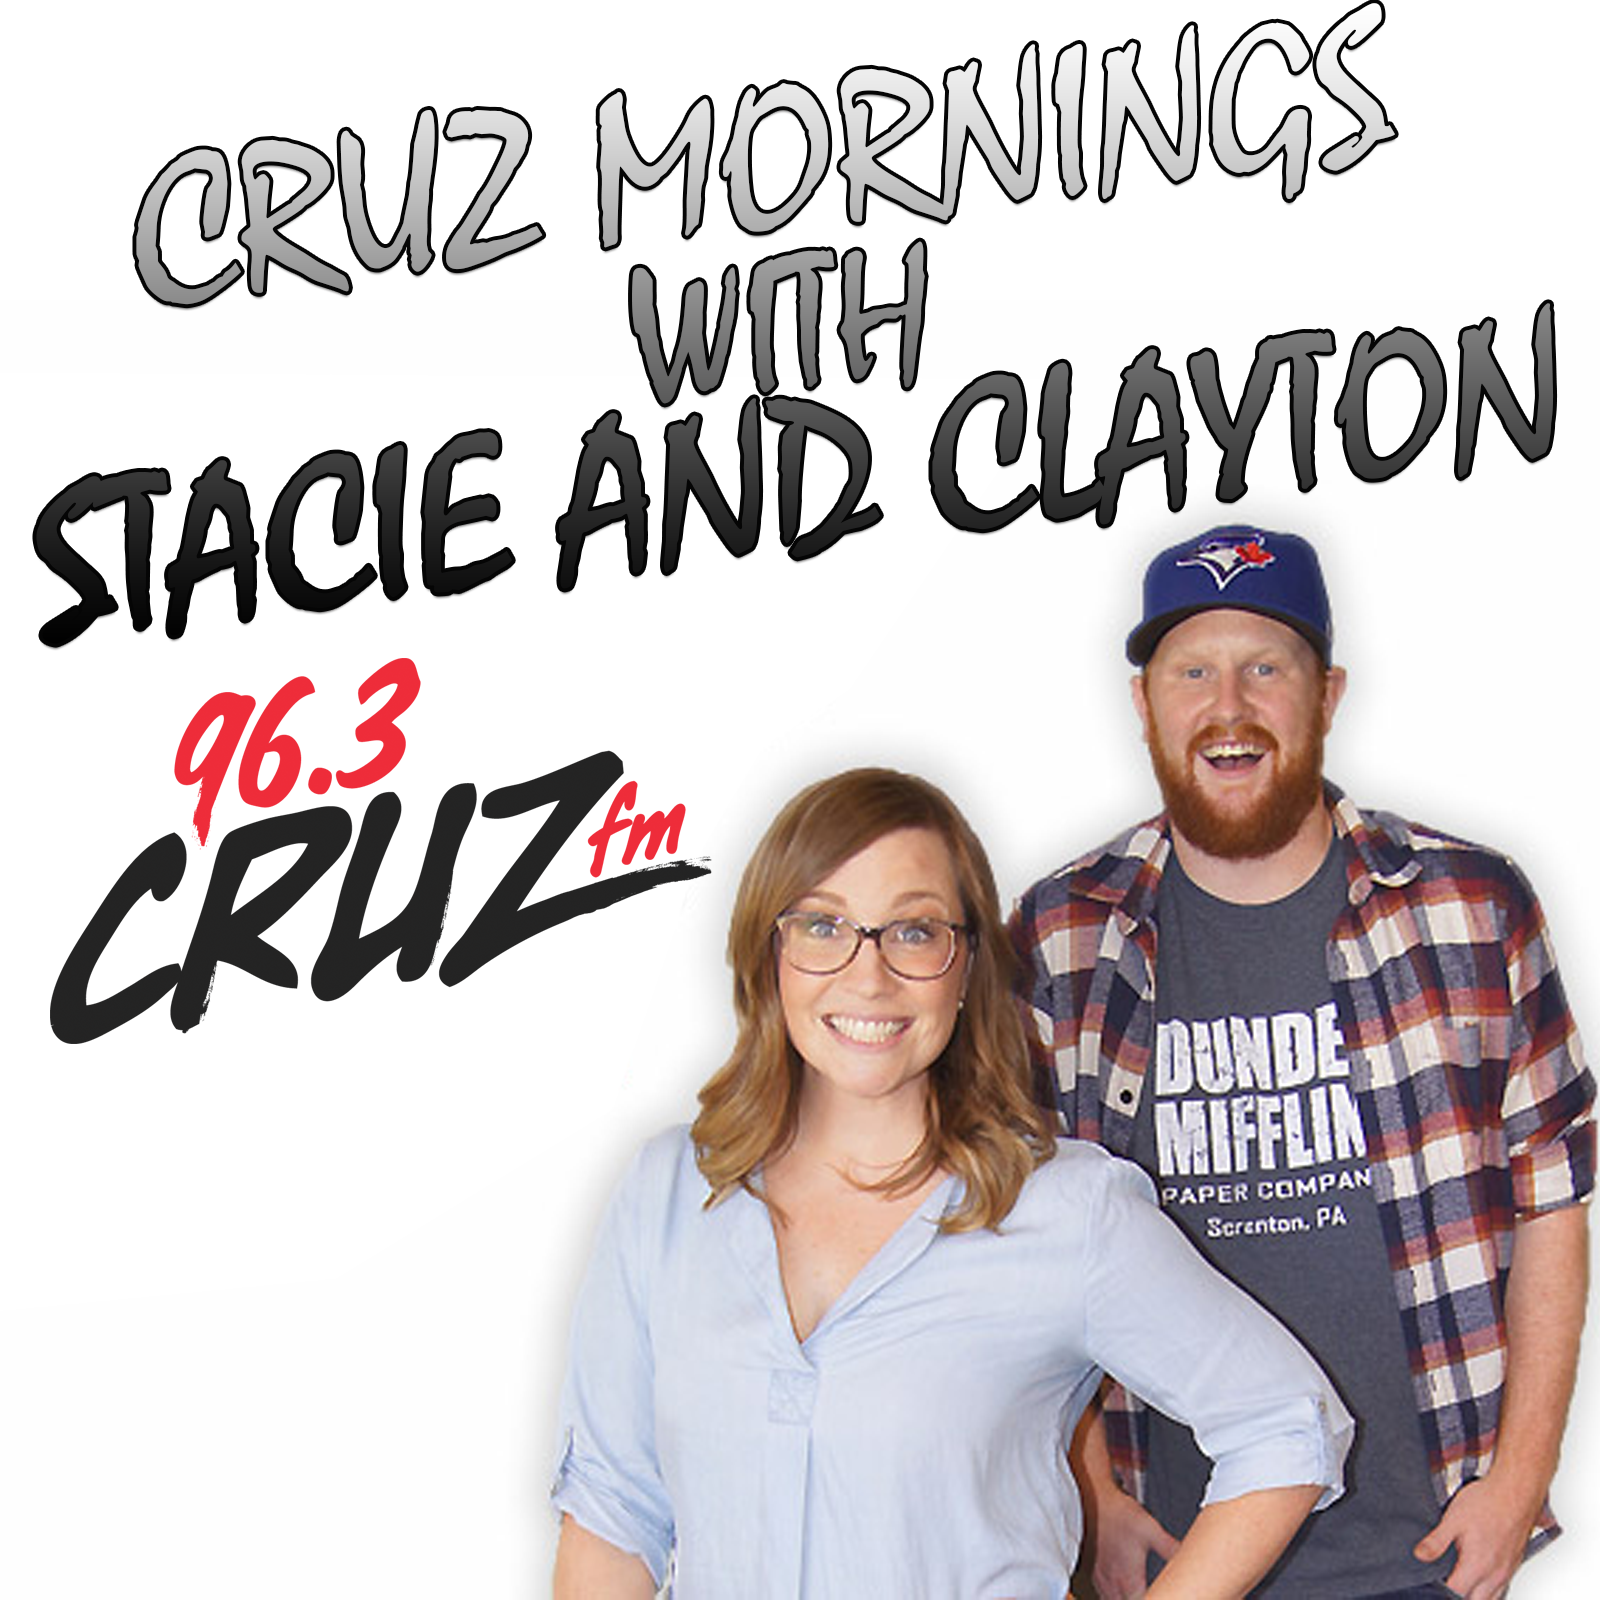 Cruz Mornings with Stacie & Clayton by 96.3 Cruz FM on Apple Podcasts